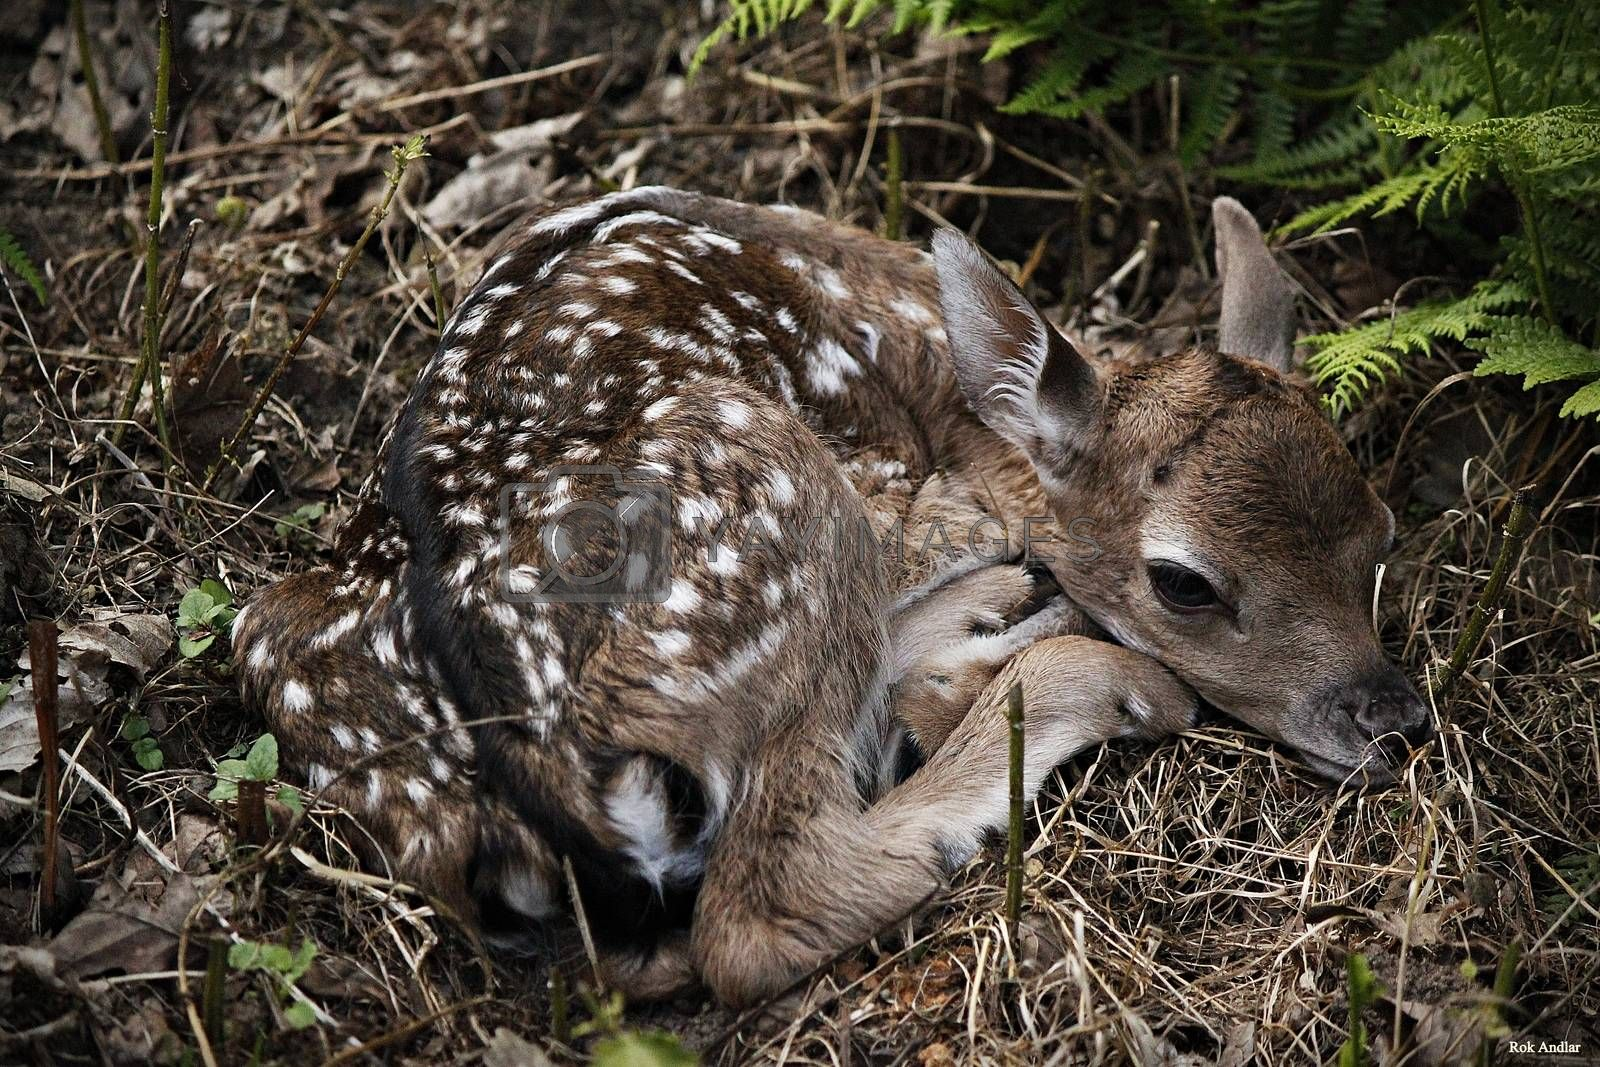 Royalty free image of Fawn by rok993